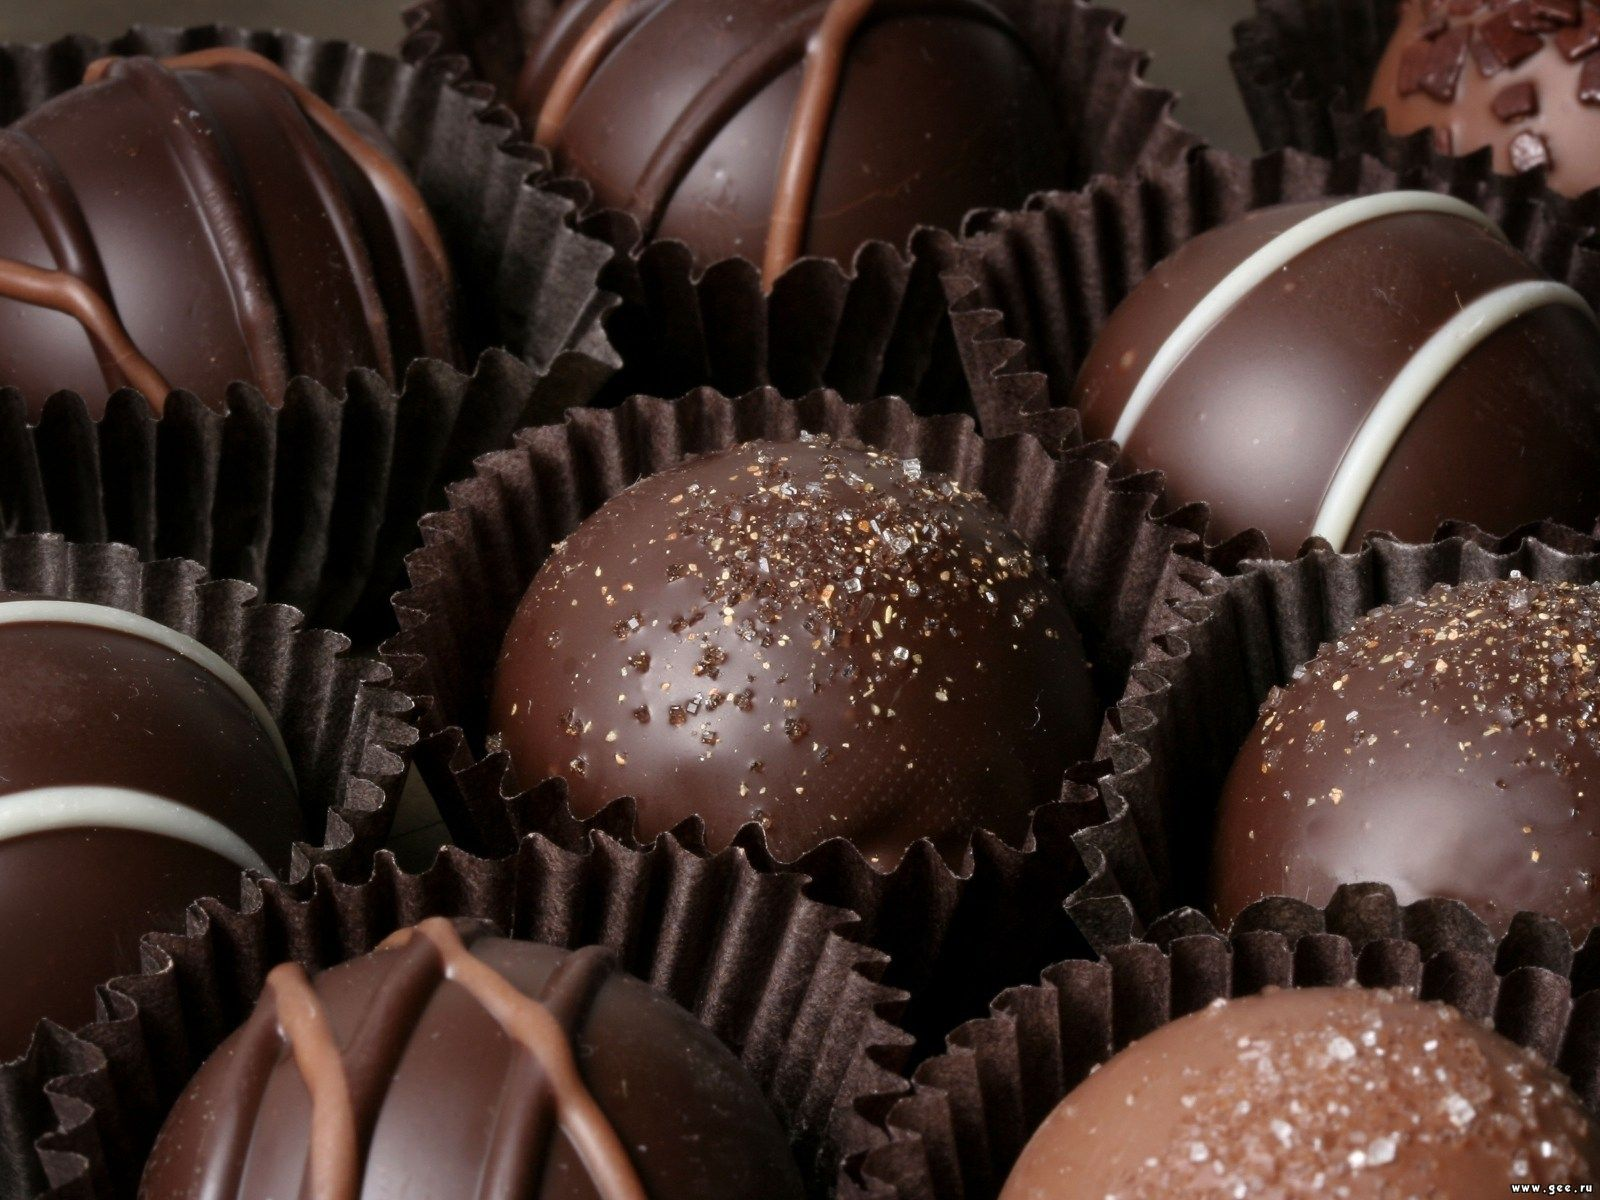 Wallpaper Chocolate Candy Food Sweets